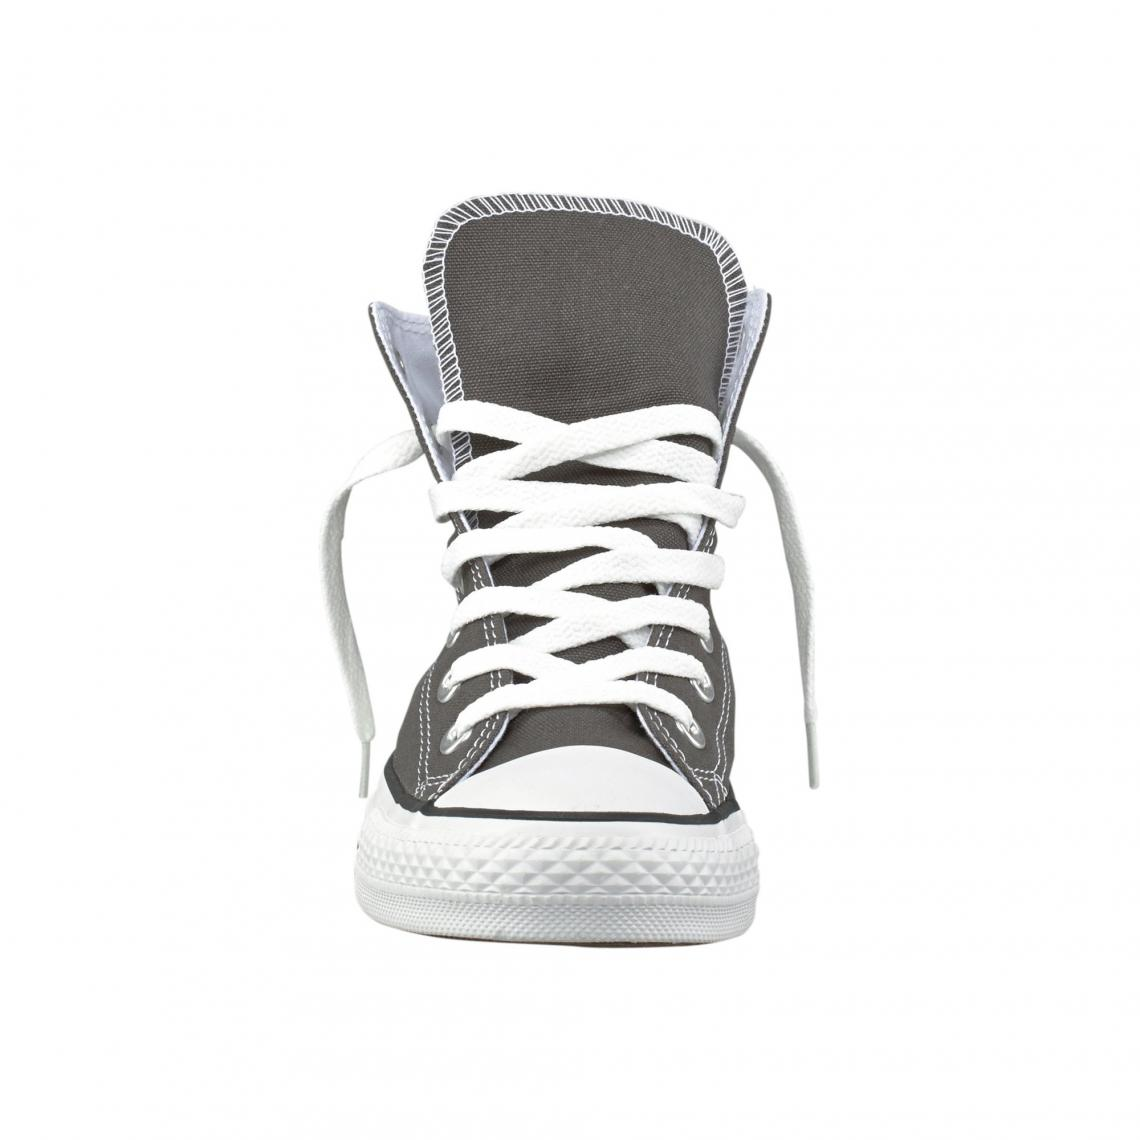 626aaec87ca50 Baskets montantes homme Chuck Taylor Converse All Star Hi - Gris